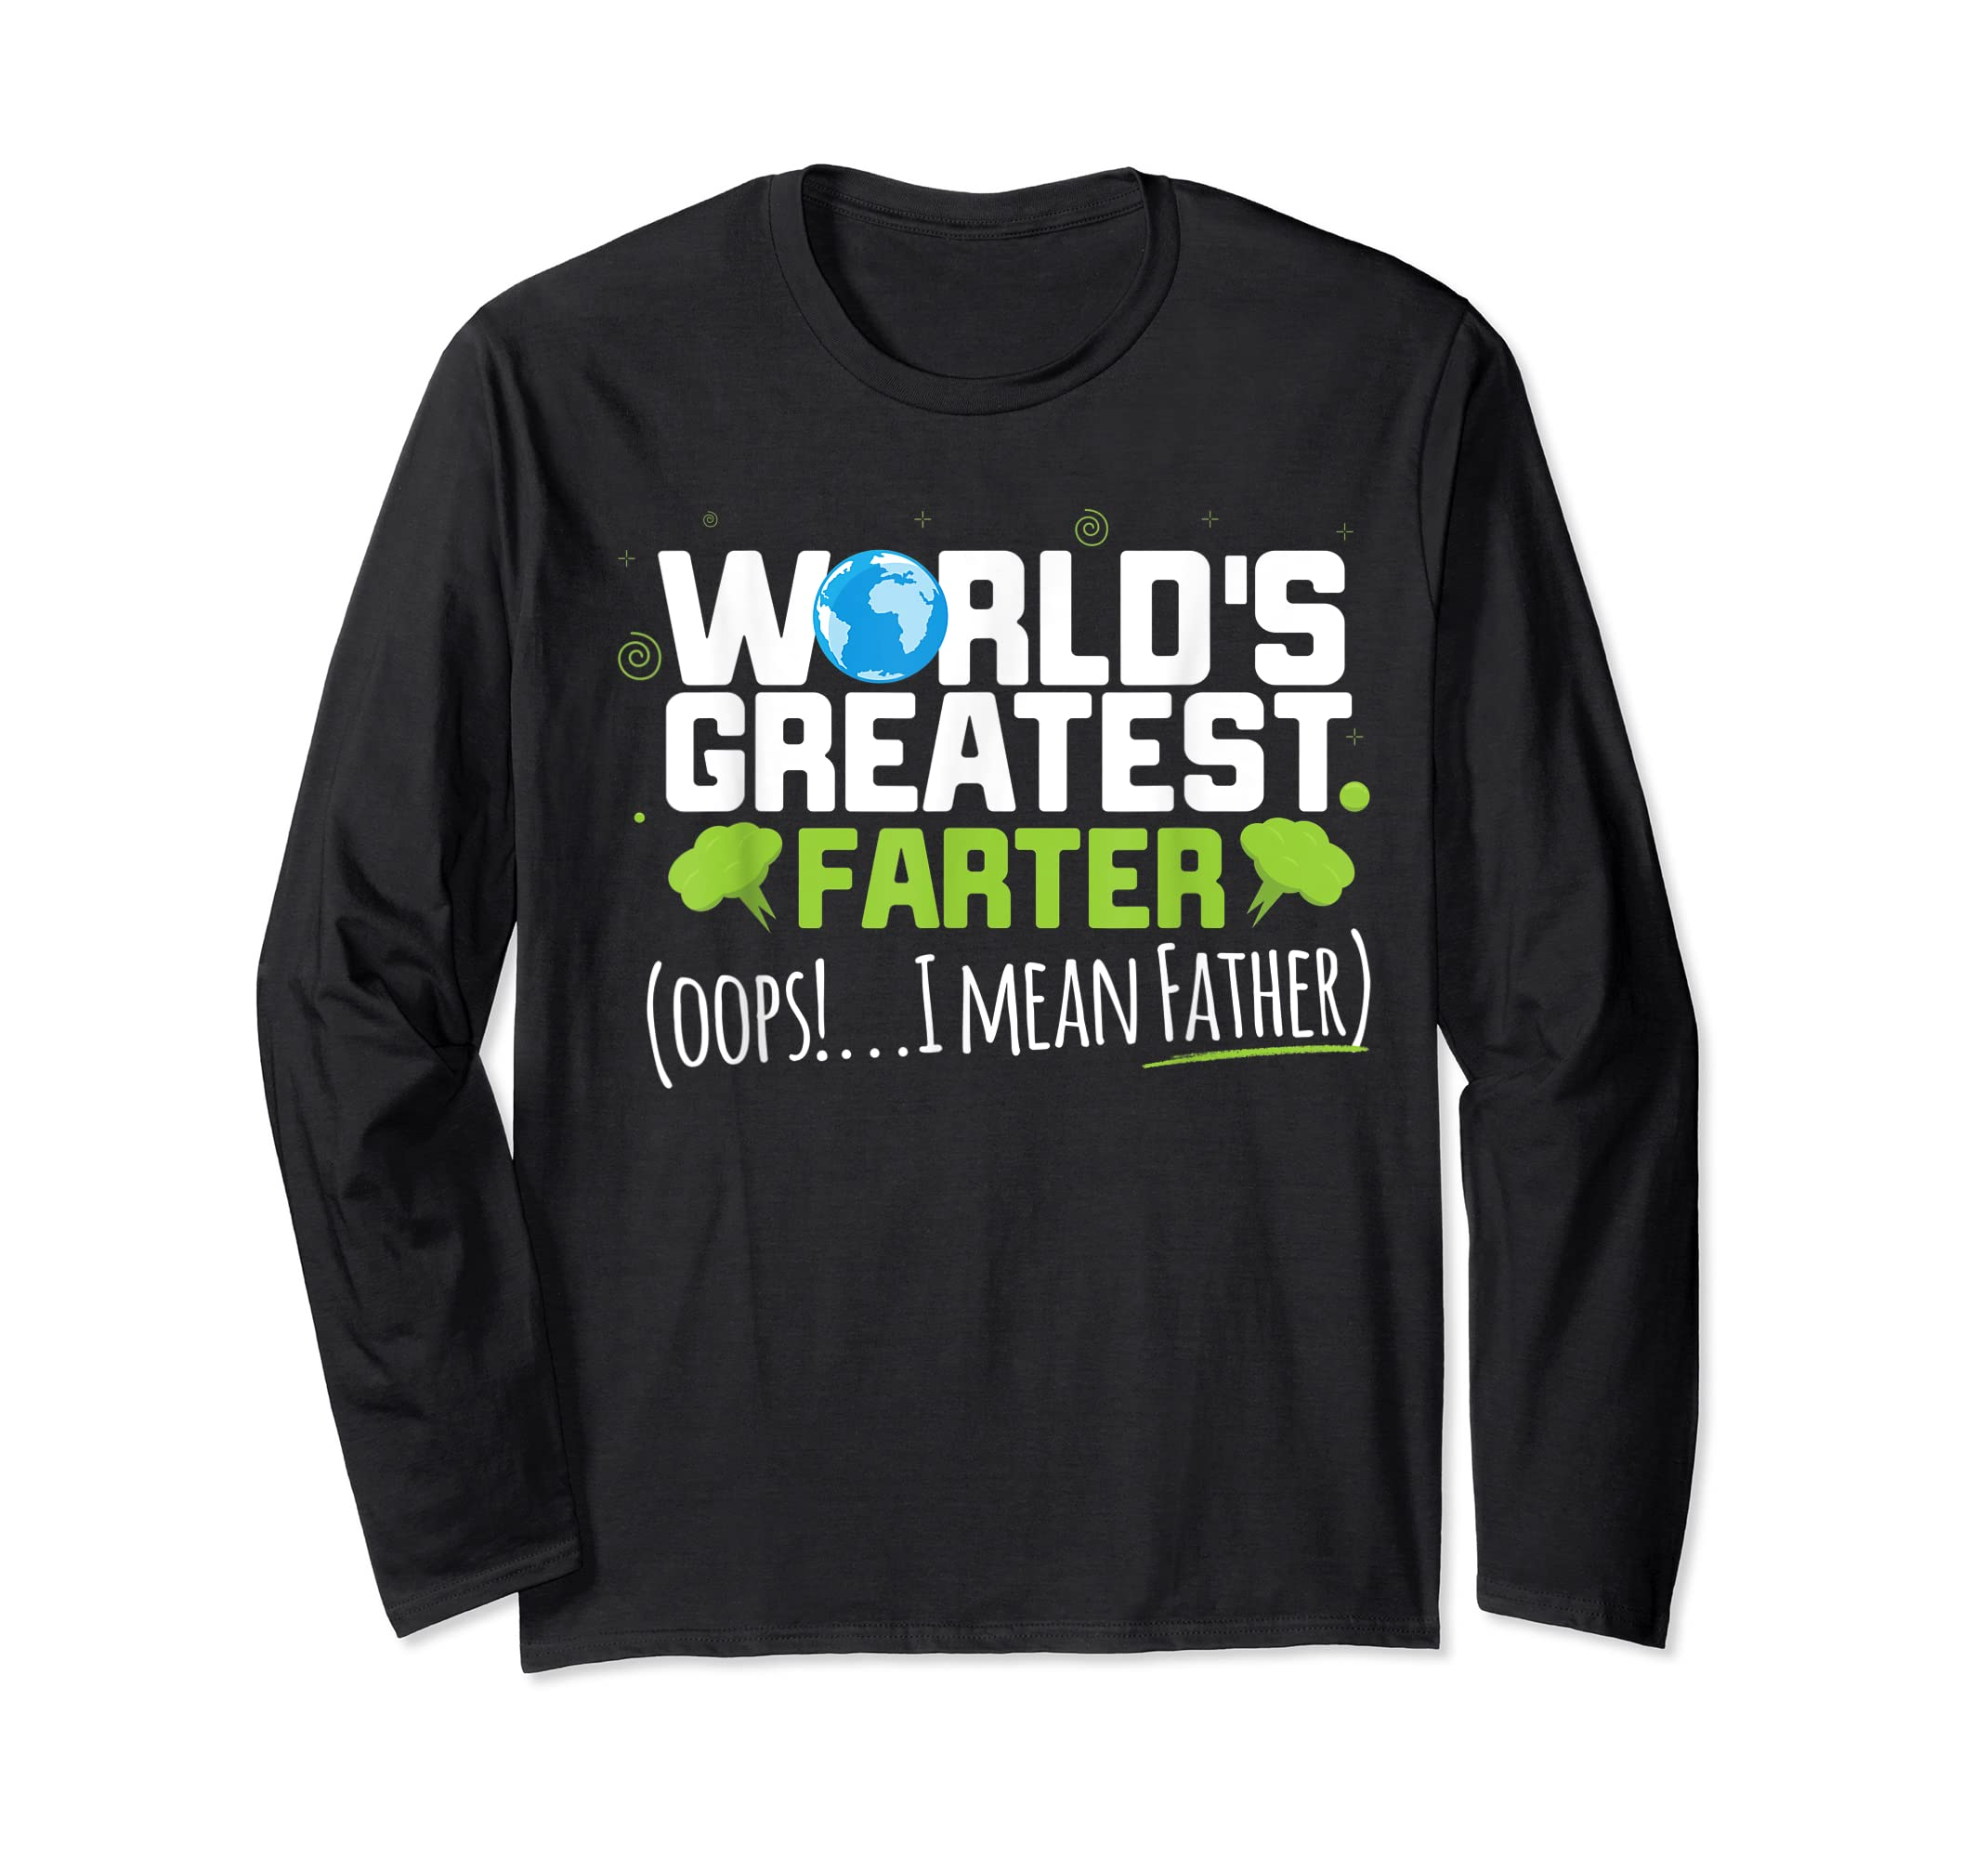 Mens World's Greatest Farter Oops! I Mean Father Shirt-Long Sleeve-Black